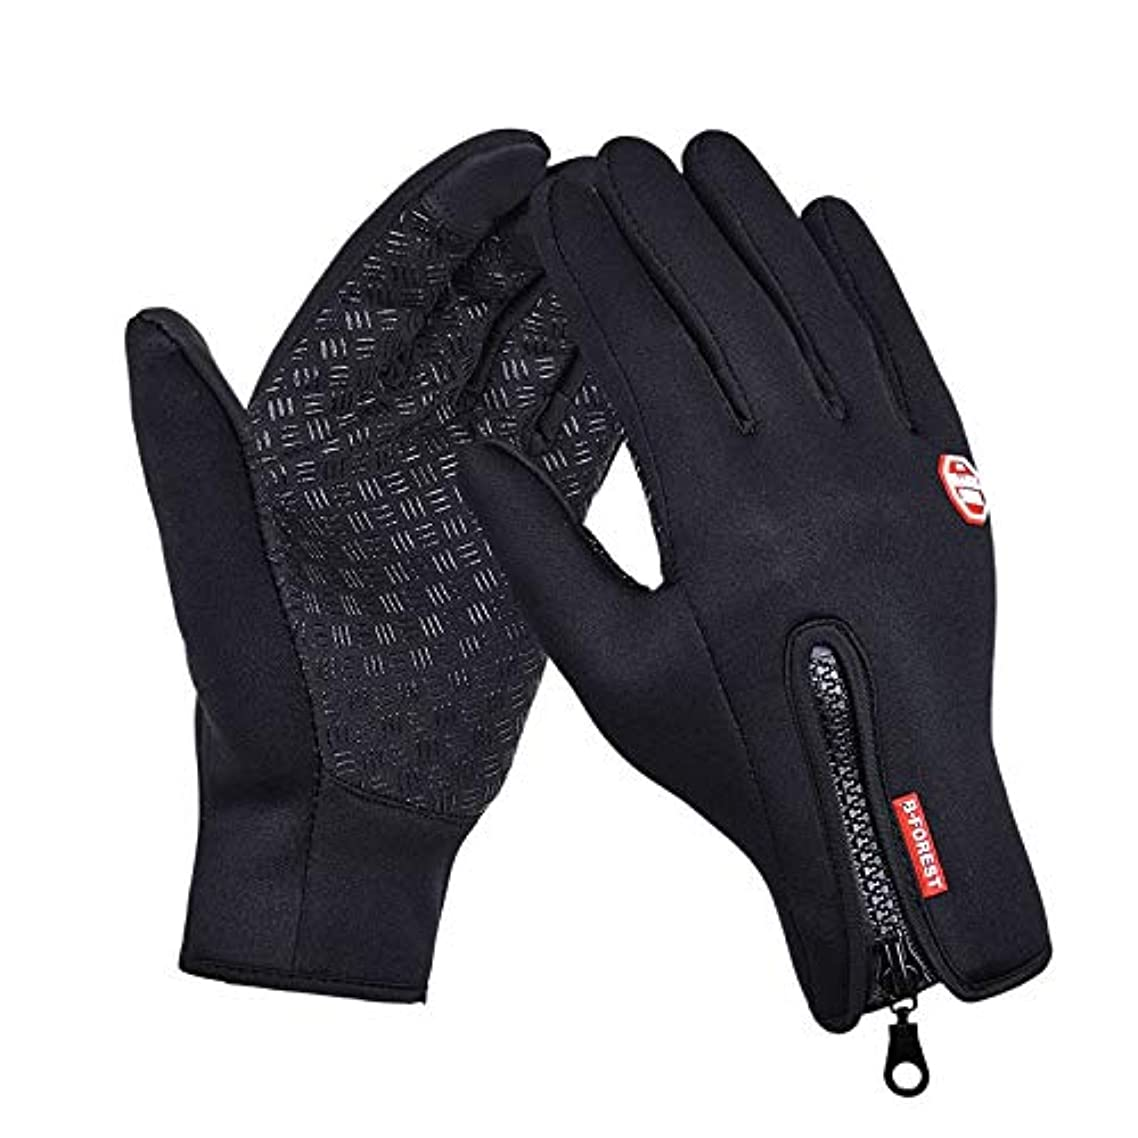 Outdoor Sports Hiking Winter Bicycle Bike Cycling Gloves For Men, Women Windstopper Simulated Leather Soft Warm Gloves - Black - Size S